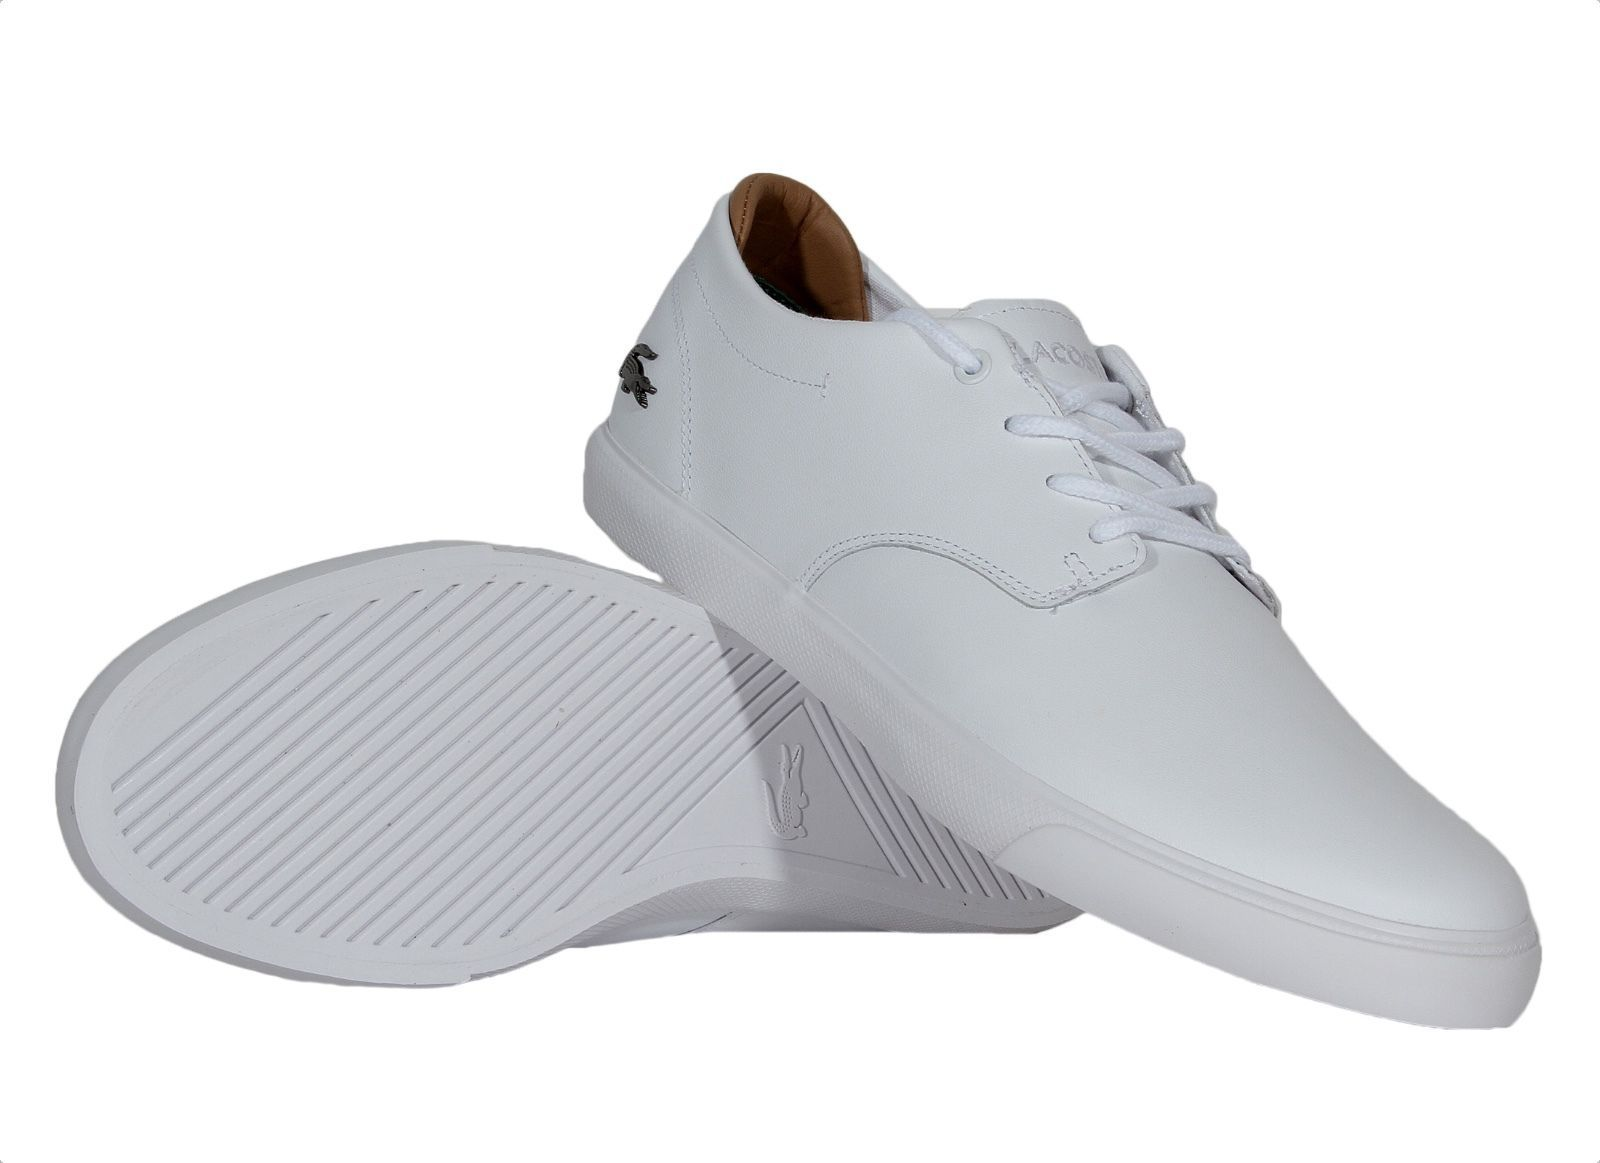 86b8dd51d51f6c Lacoste Mens Shoes Espere 117 1 CAM Leather Sneakers 7-33CAM1040001 White